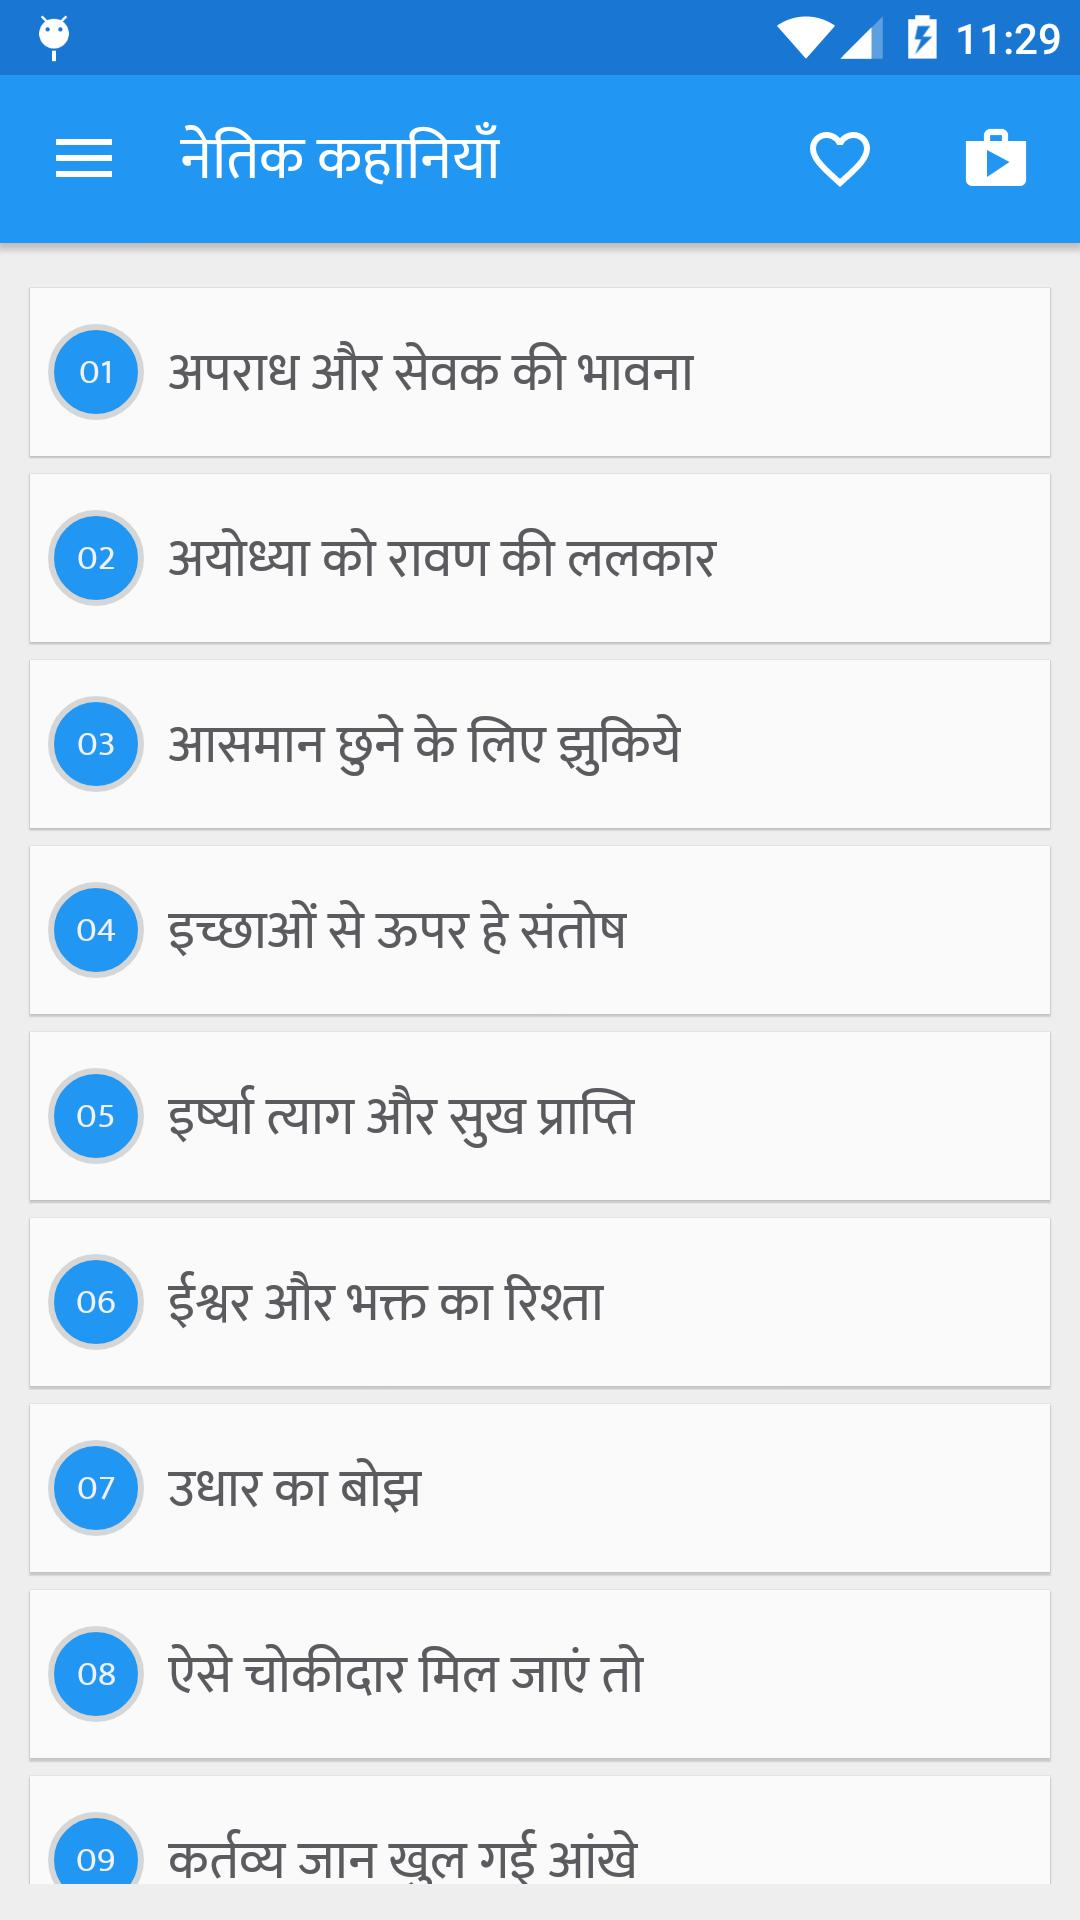 Moral Stories Hindi for Android - APK Download